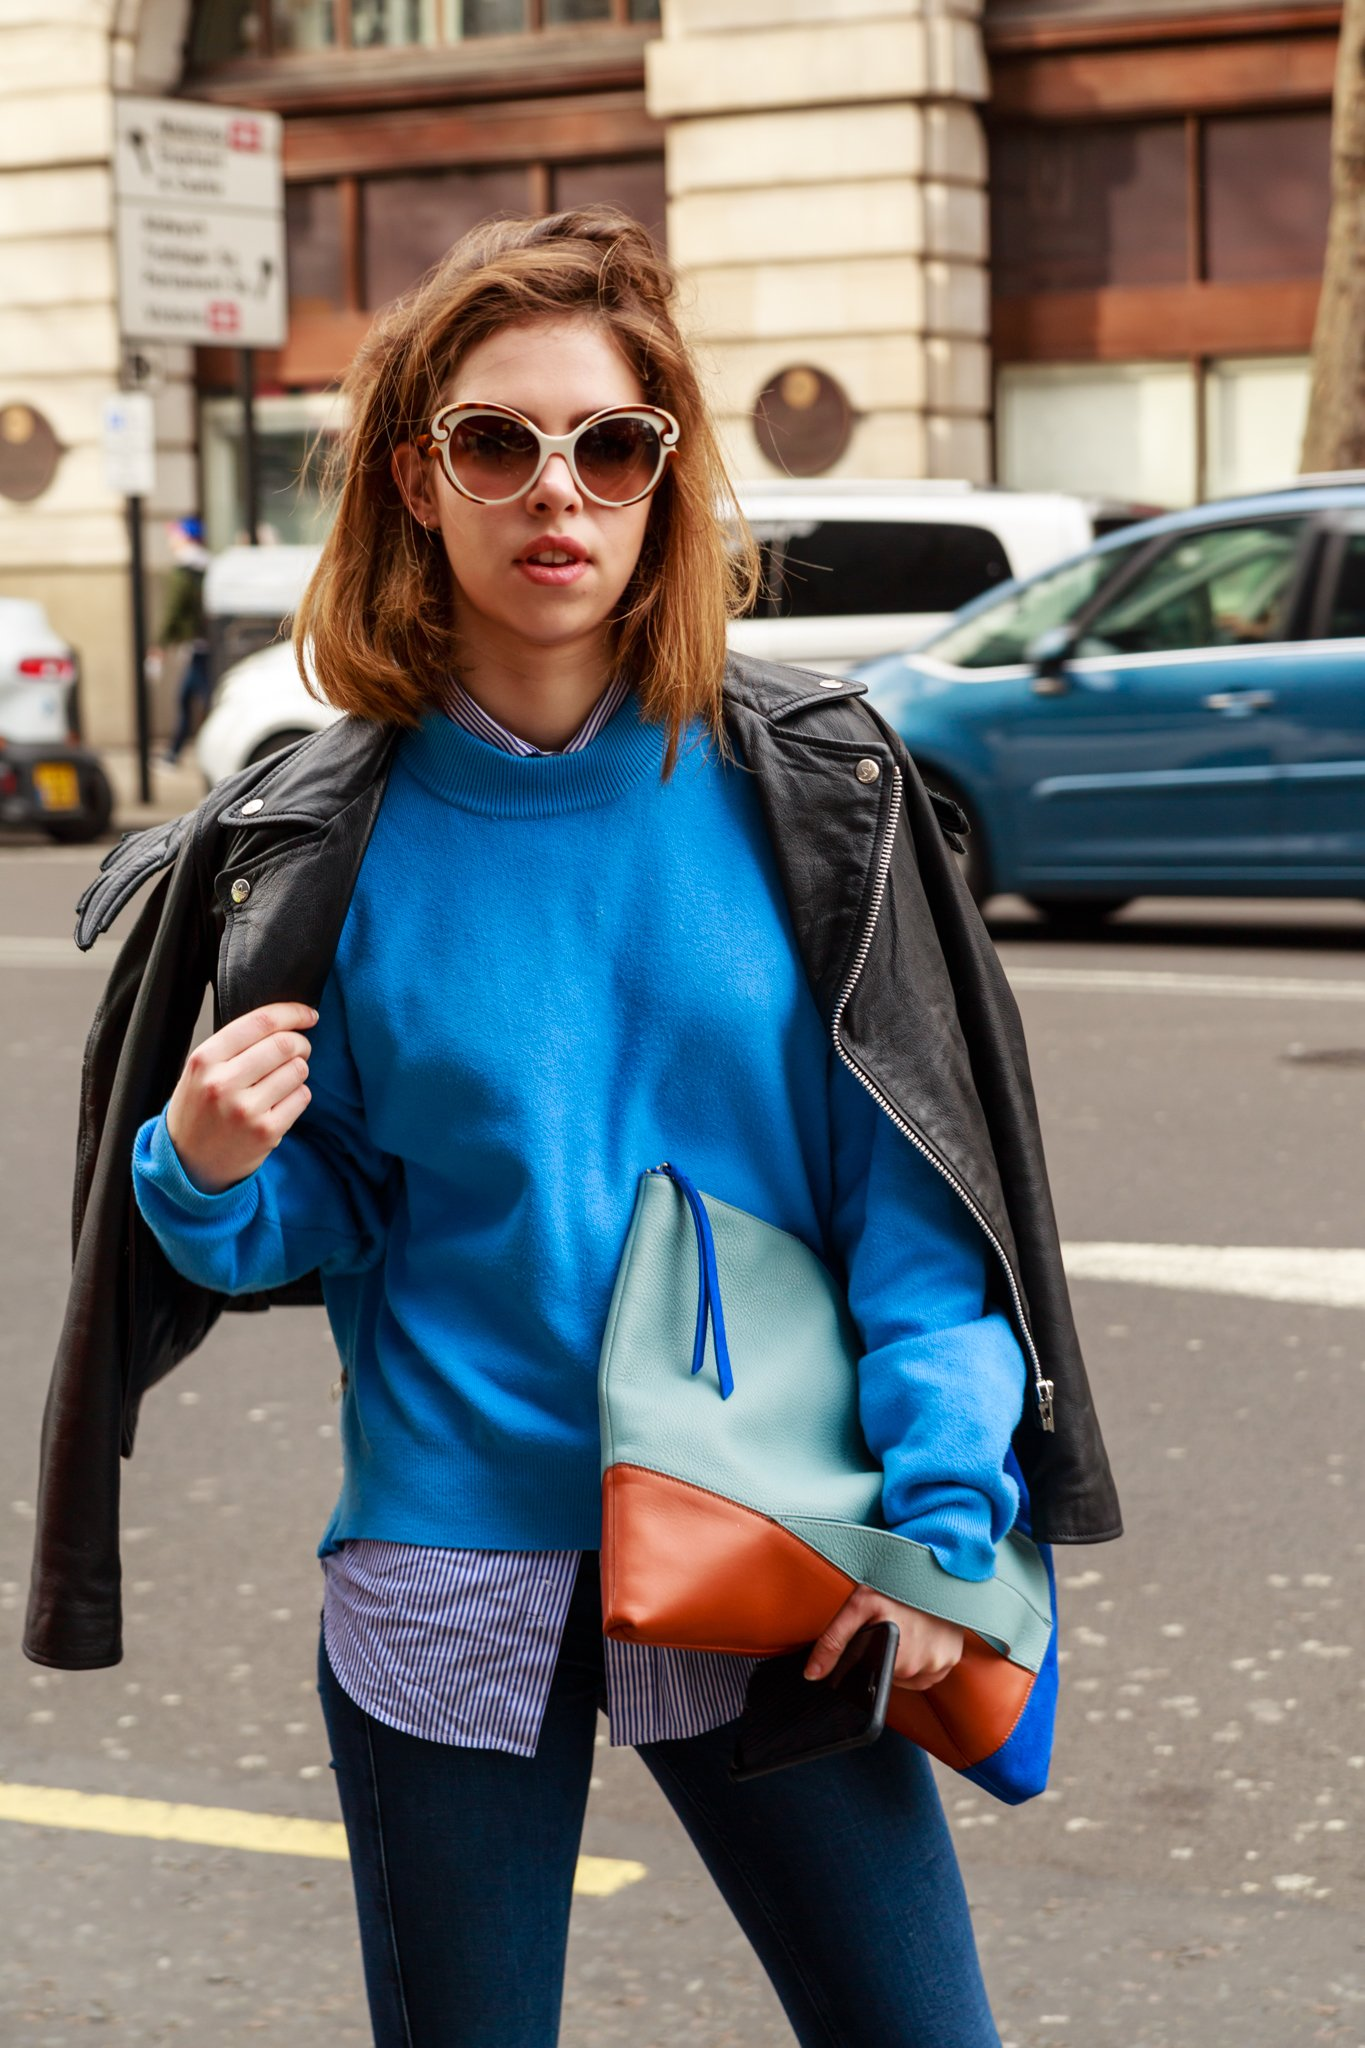 Street Fashion at LFW